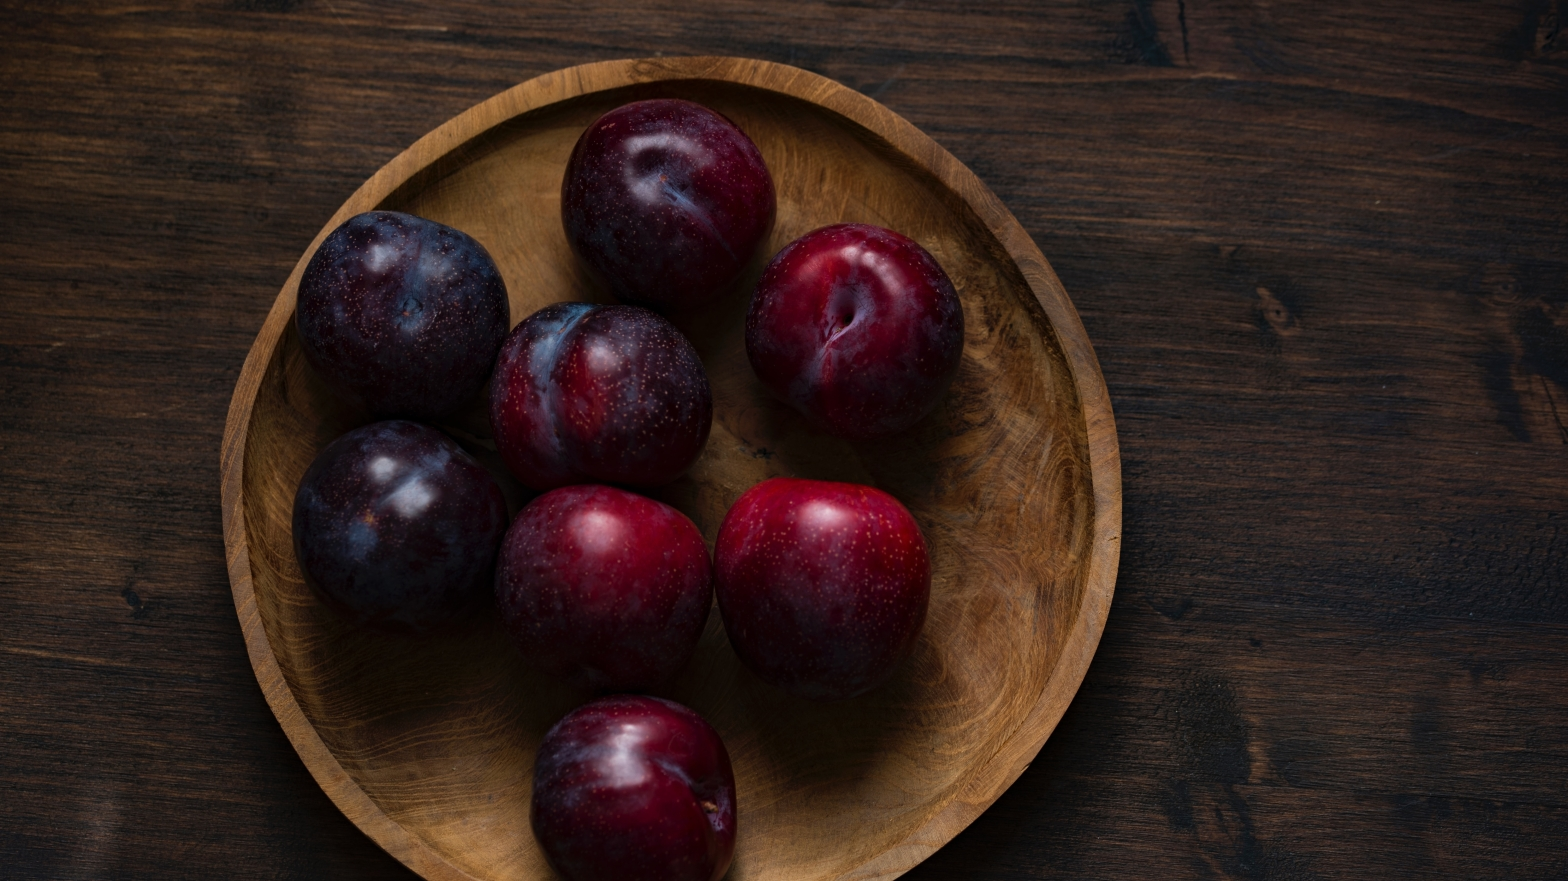 Image is of a wooden bowl containing 8 ripe plums